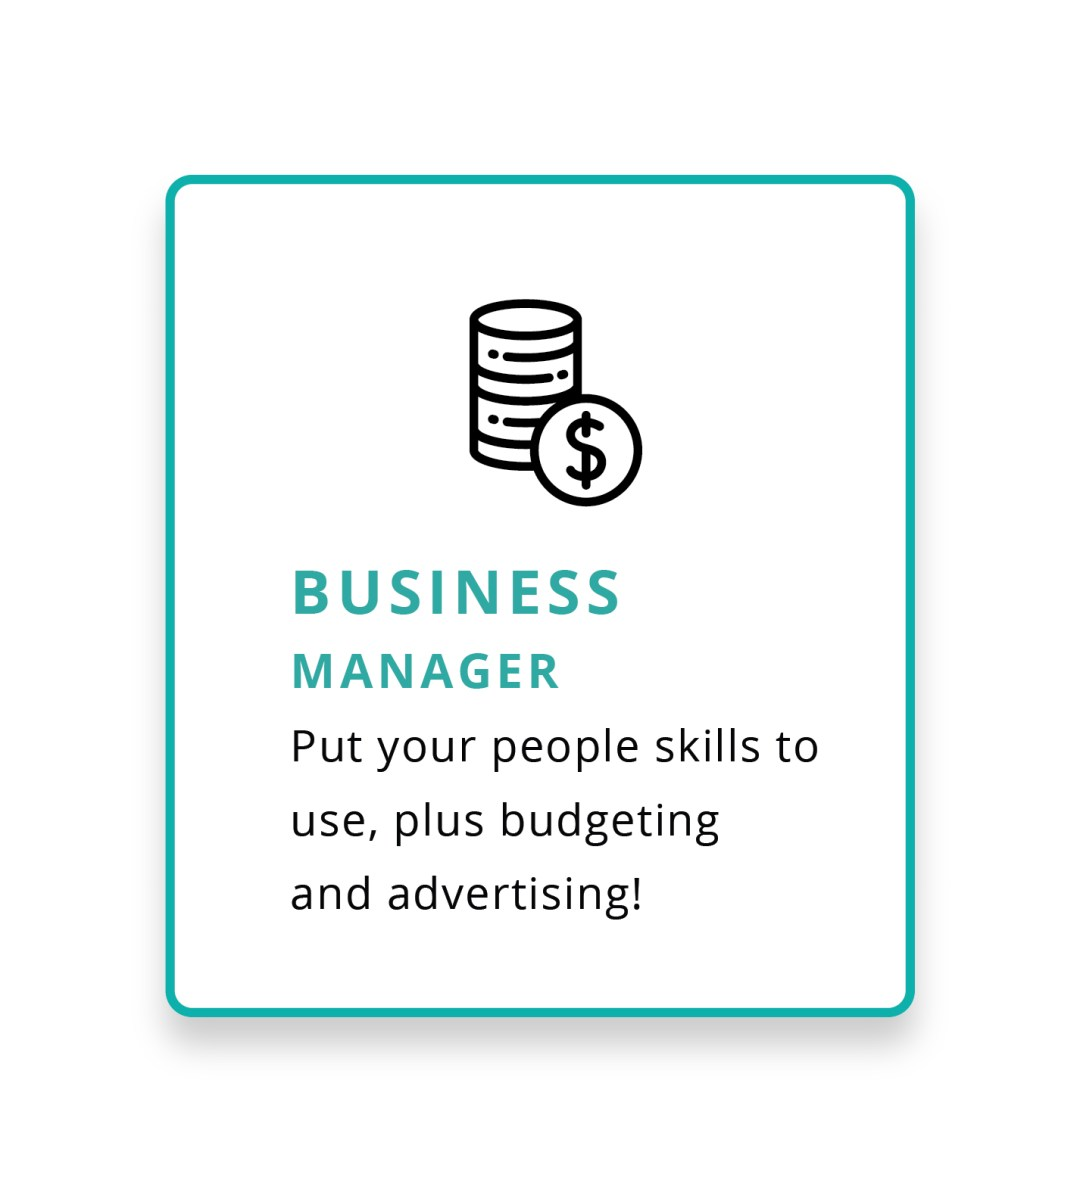 business_manager_hiring_cardd